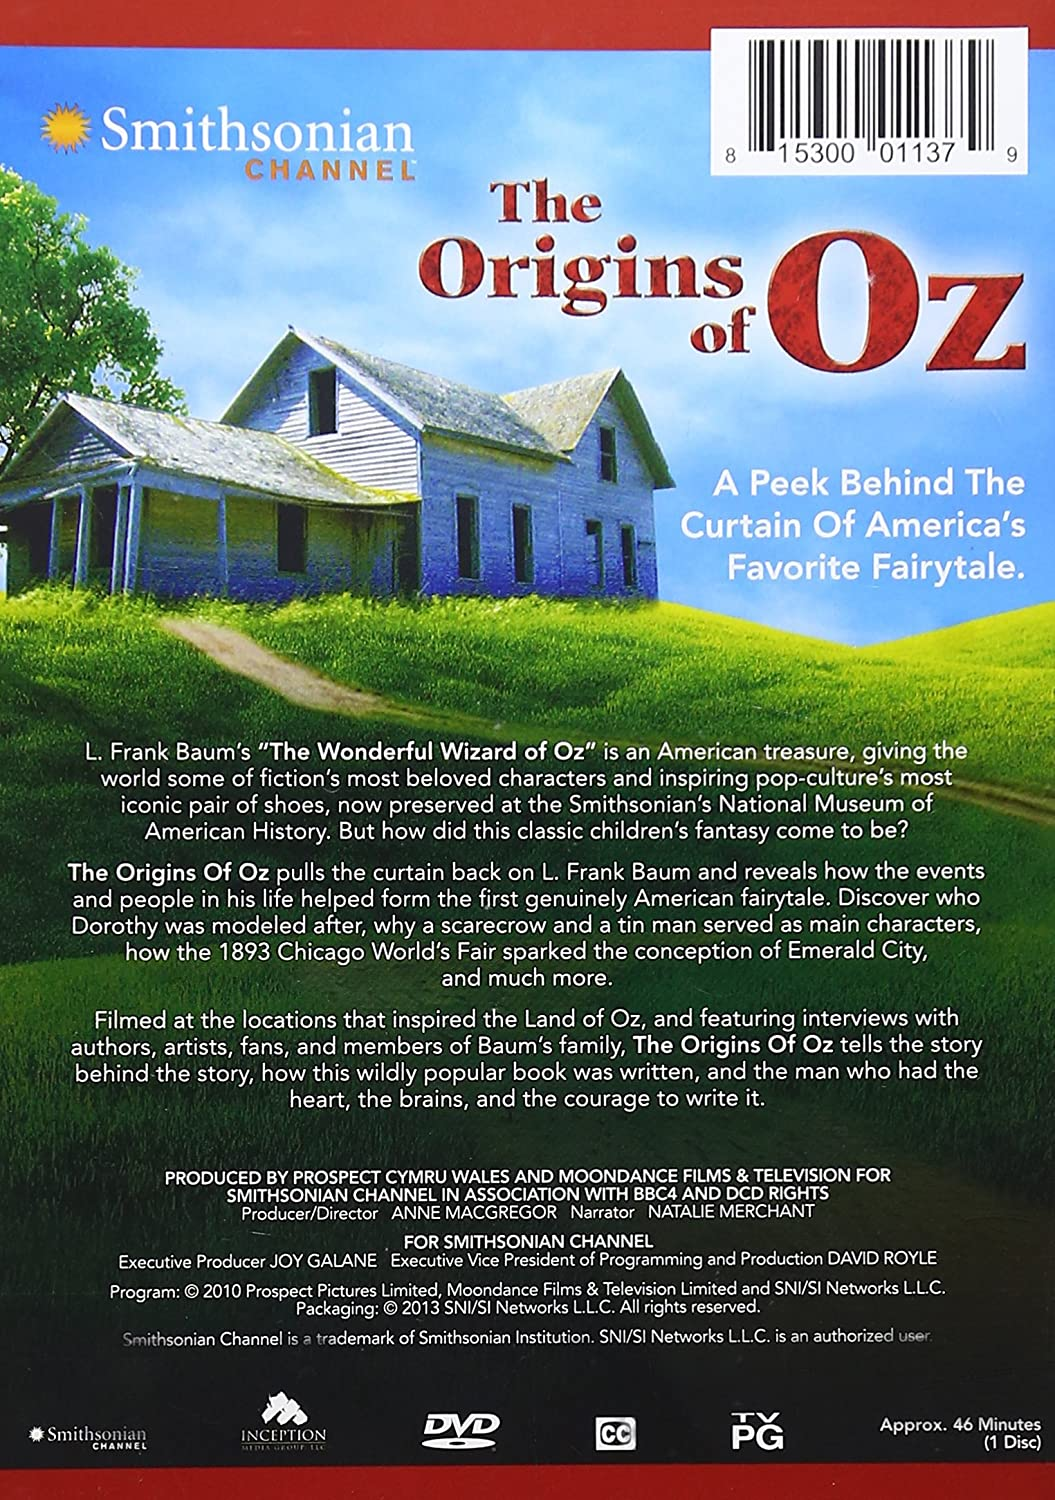 Green curtain oz - Amazon Com Smithsonian Channel The Origins Of Oz Na Anne Macgregor Movies Tv